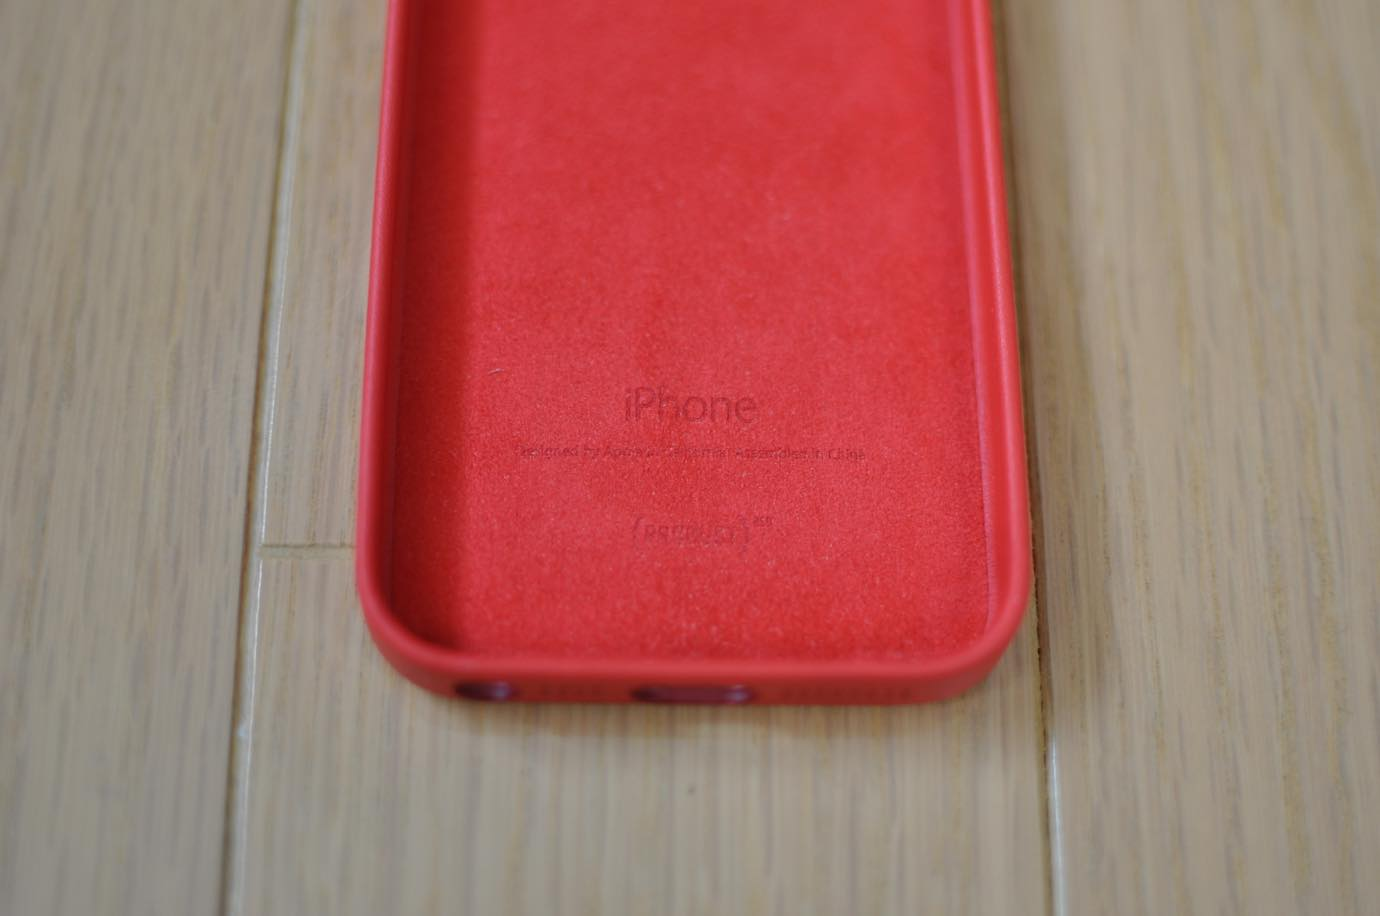 IPhone 5s Case   PRODUCT RED 07 20141215 214945